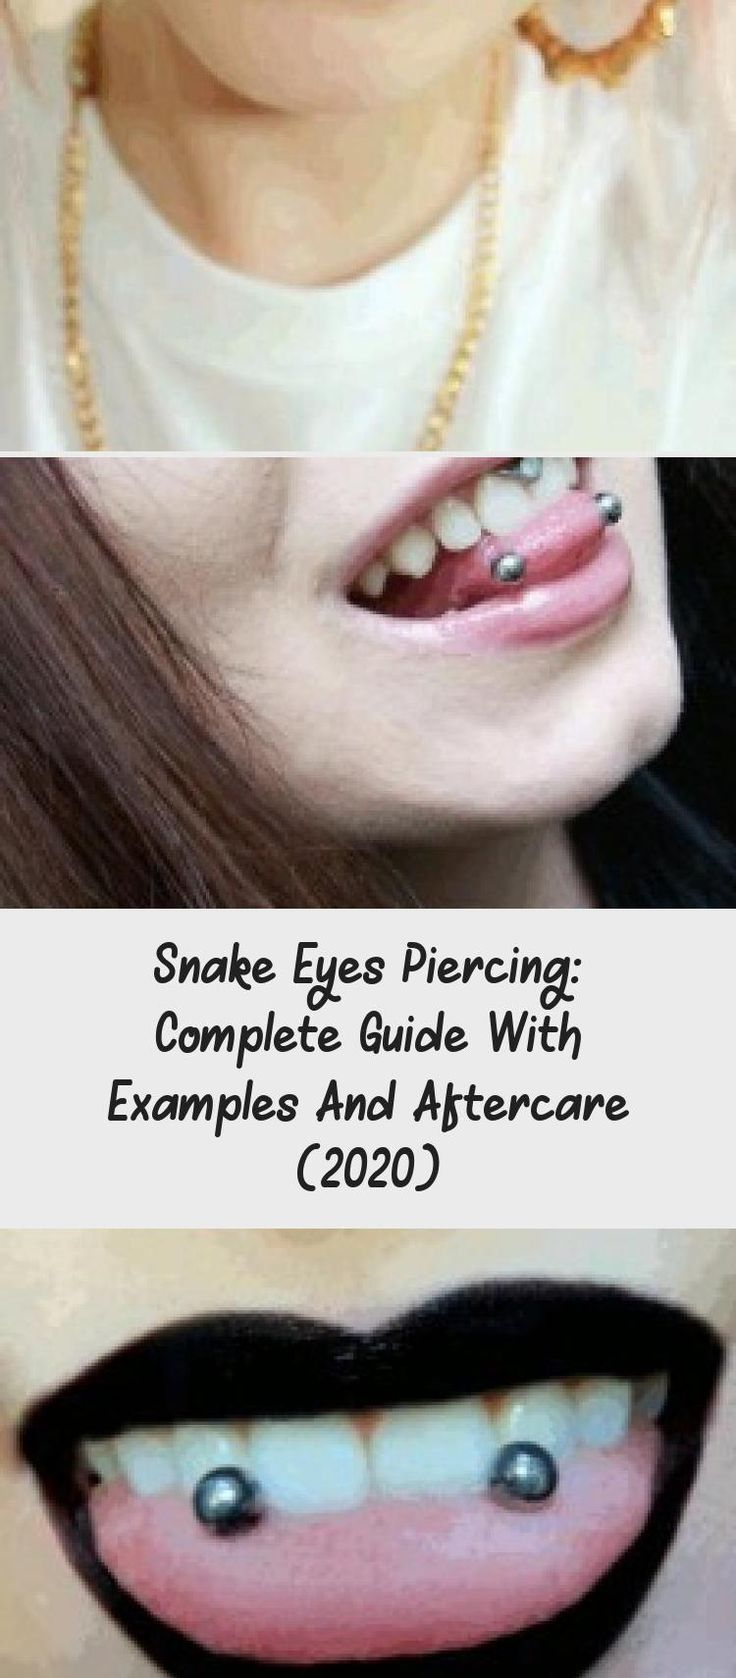 Snake Eyes Piercing: Complete Guide With Examples And ...